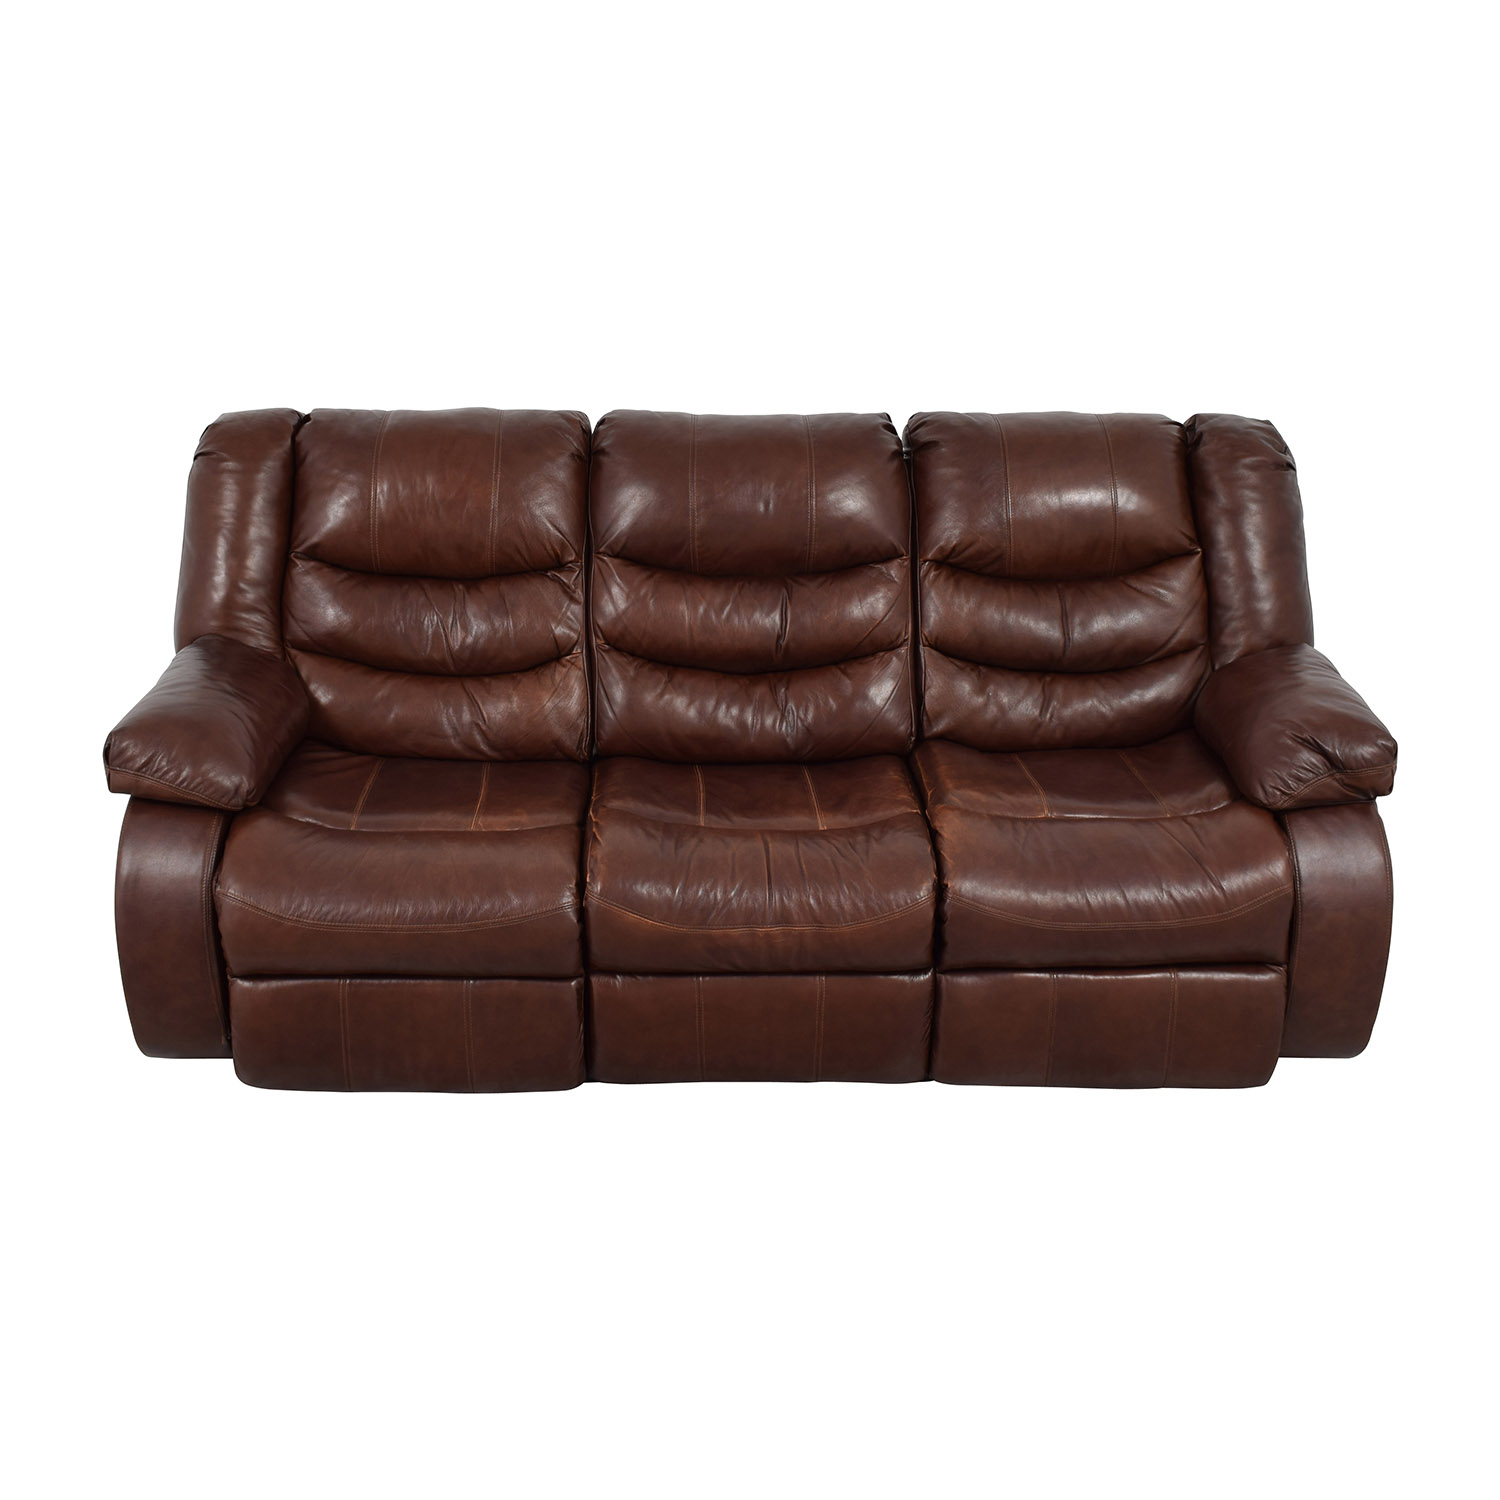 shop Ashley Furniture Large Brown Leather Reclining Couch Ashleys Furniture Sofas